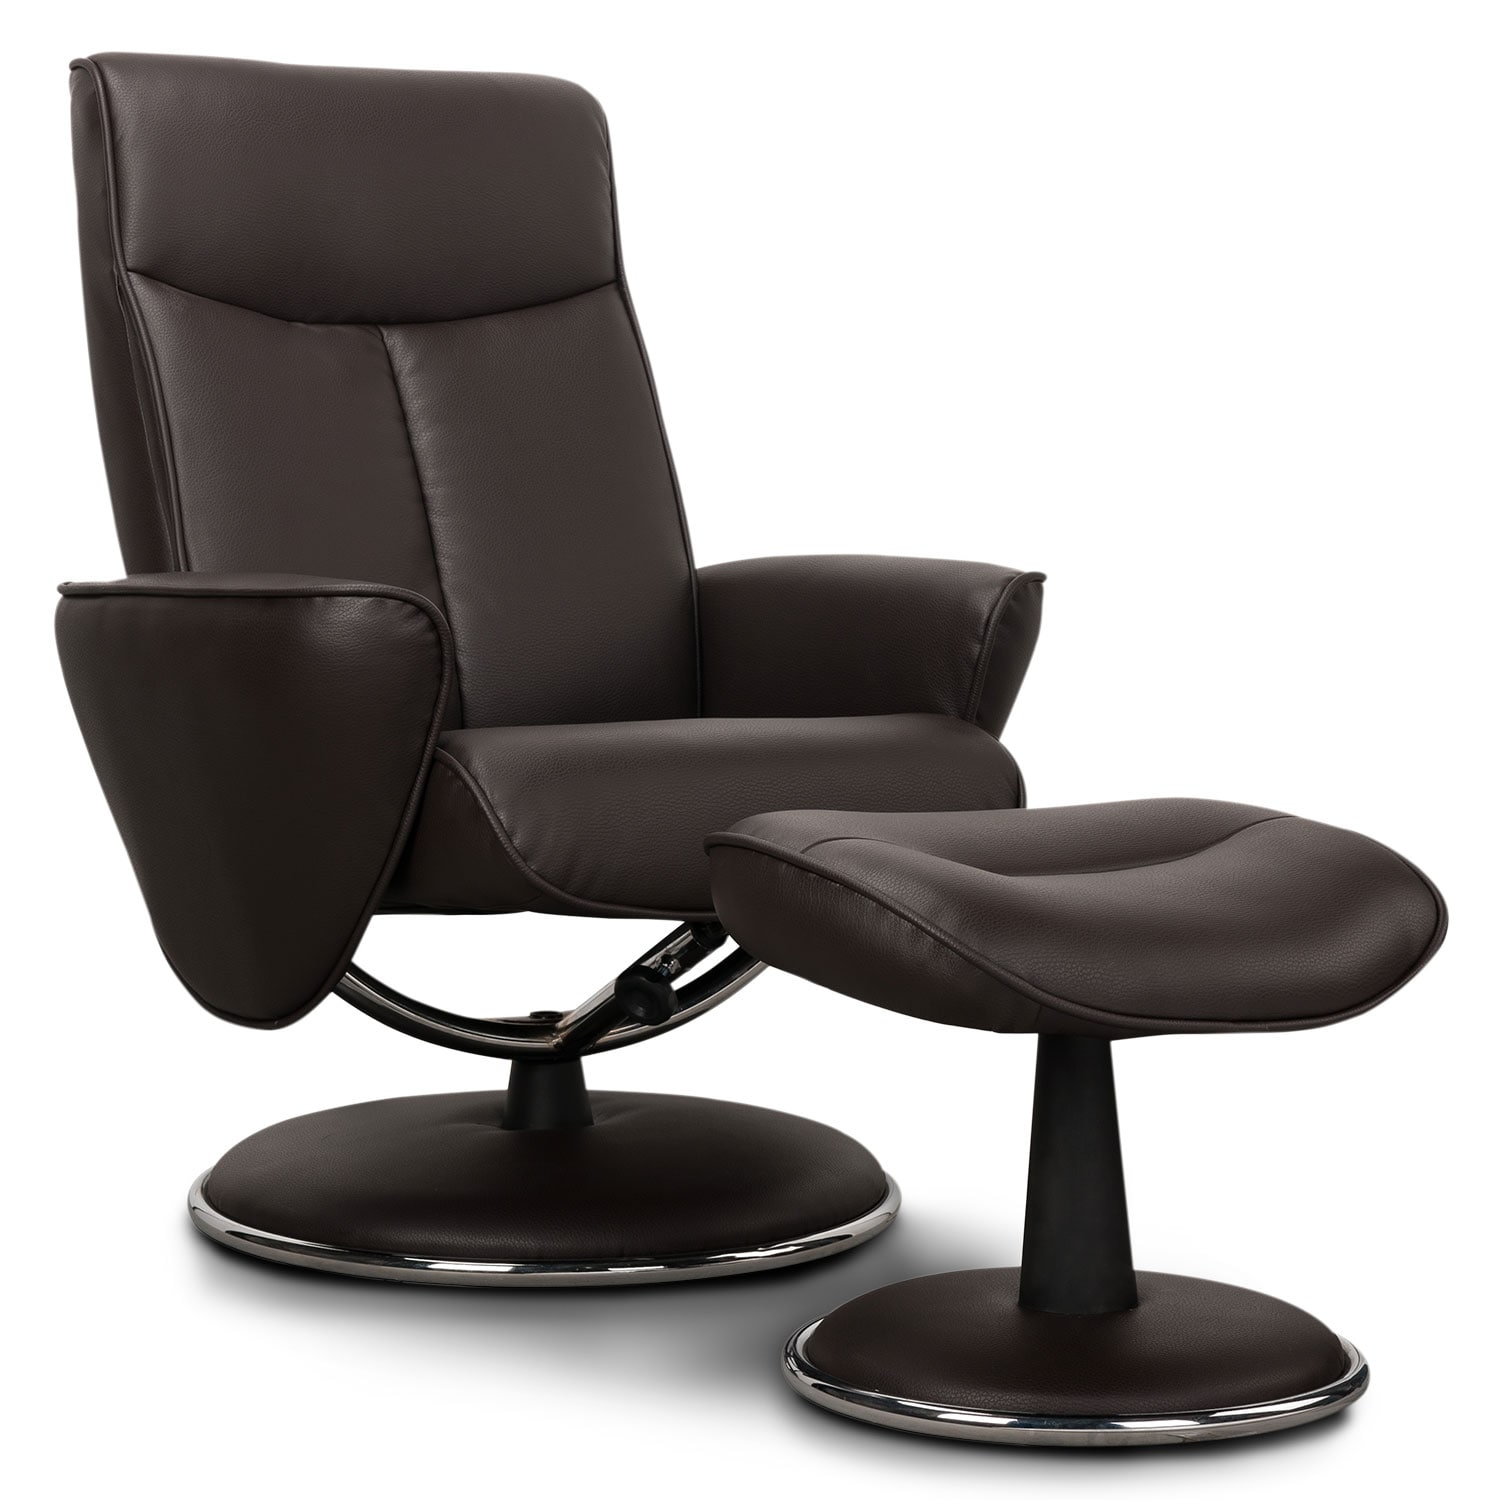 Tracer Reclining Chair and Ottoman - Chocolate